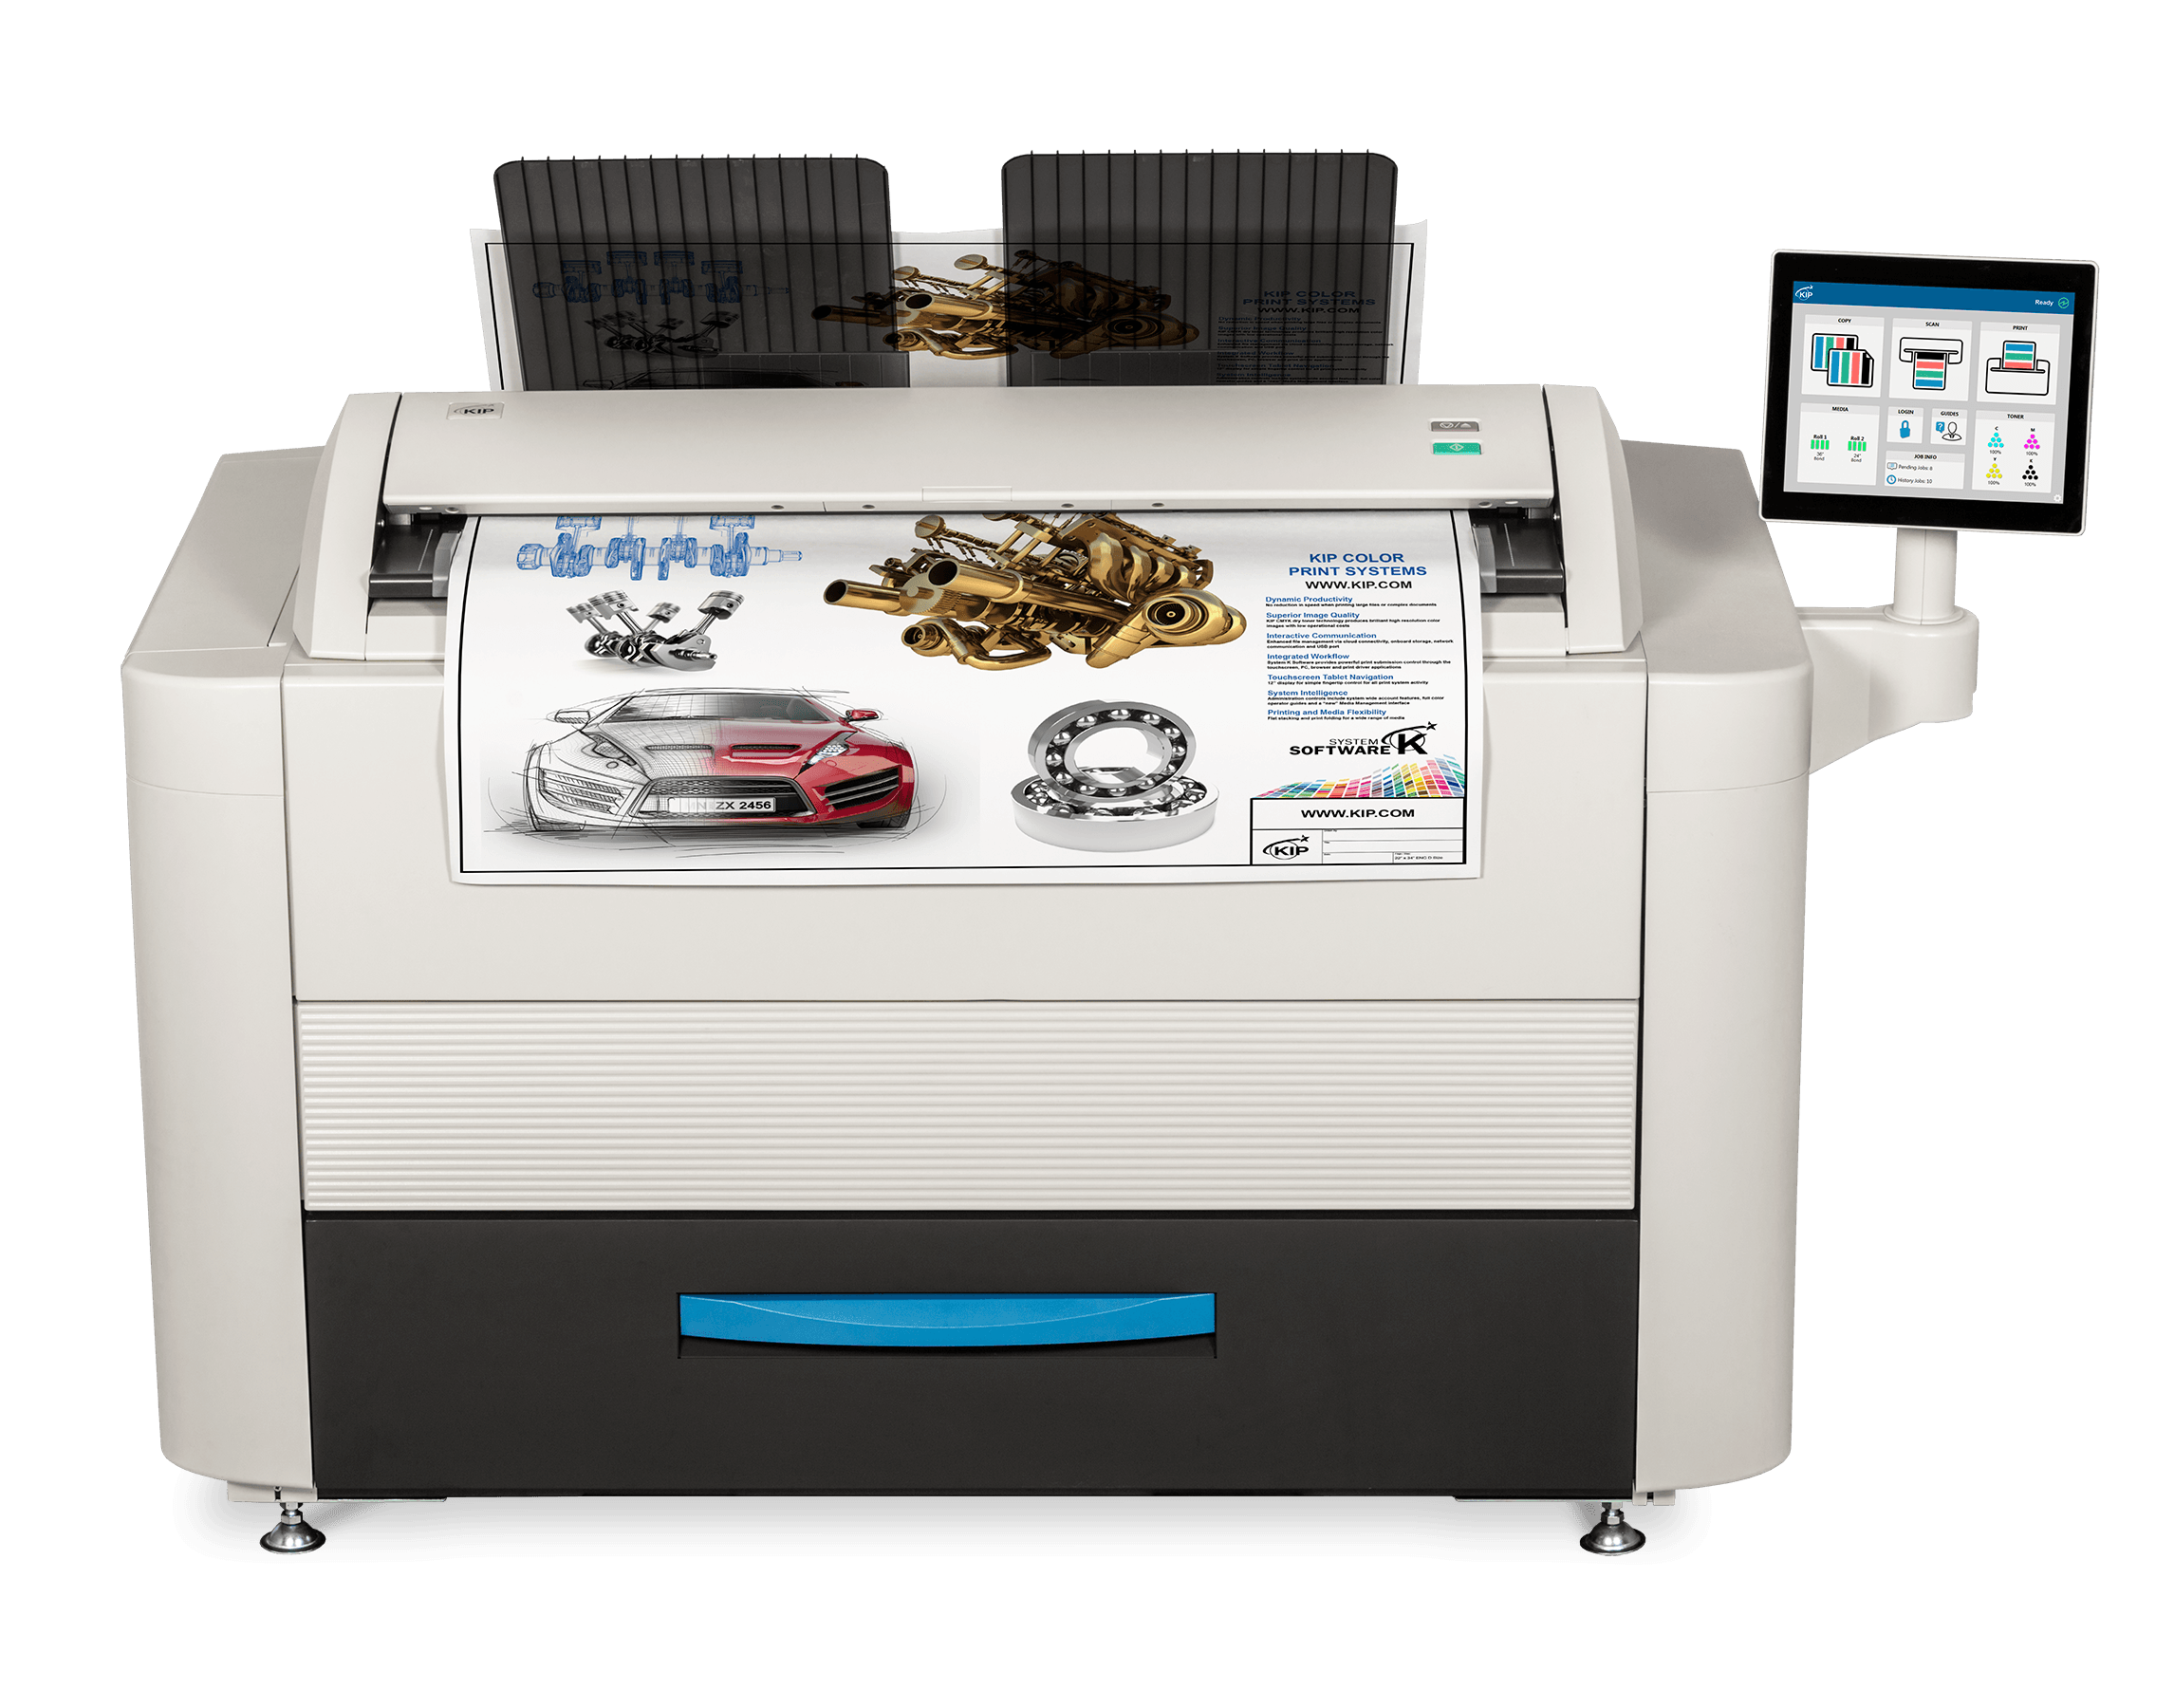 KIP 660 color printer